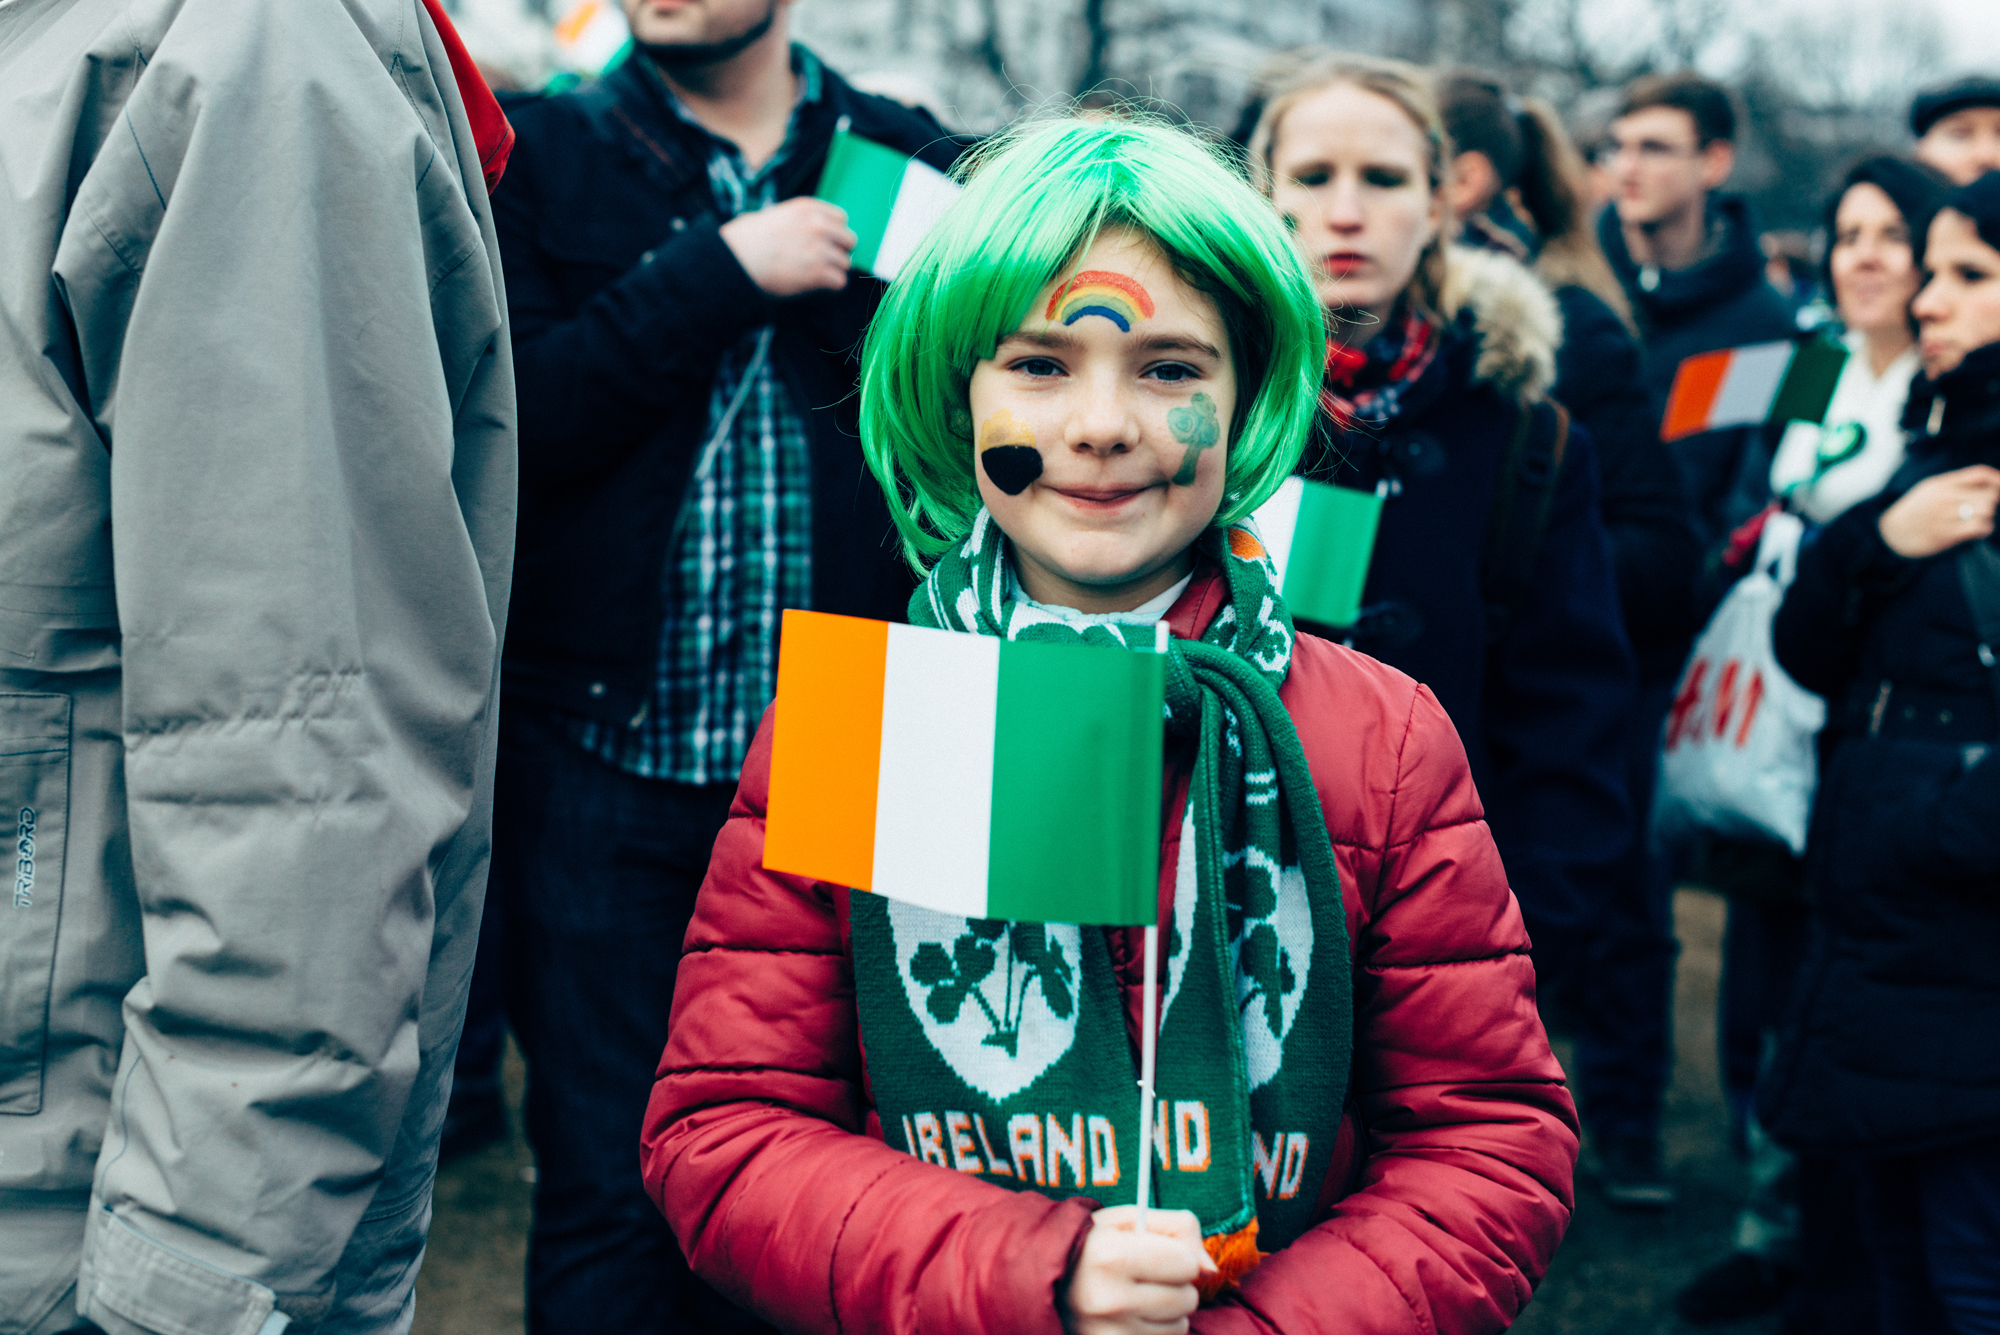 st-patricks-day-berlin-©-camille-blake-10.jpg